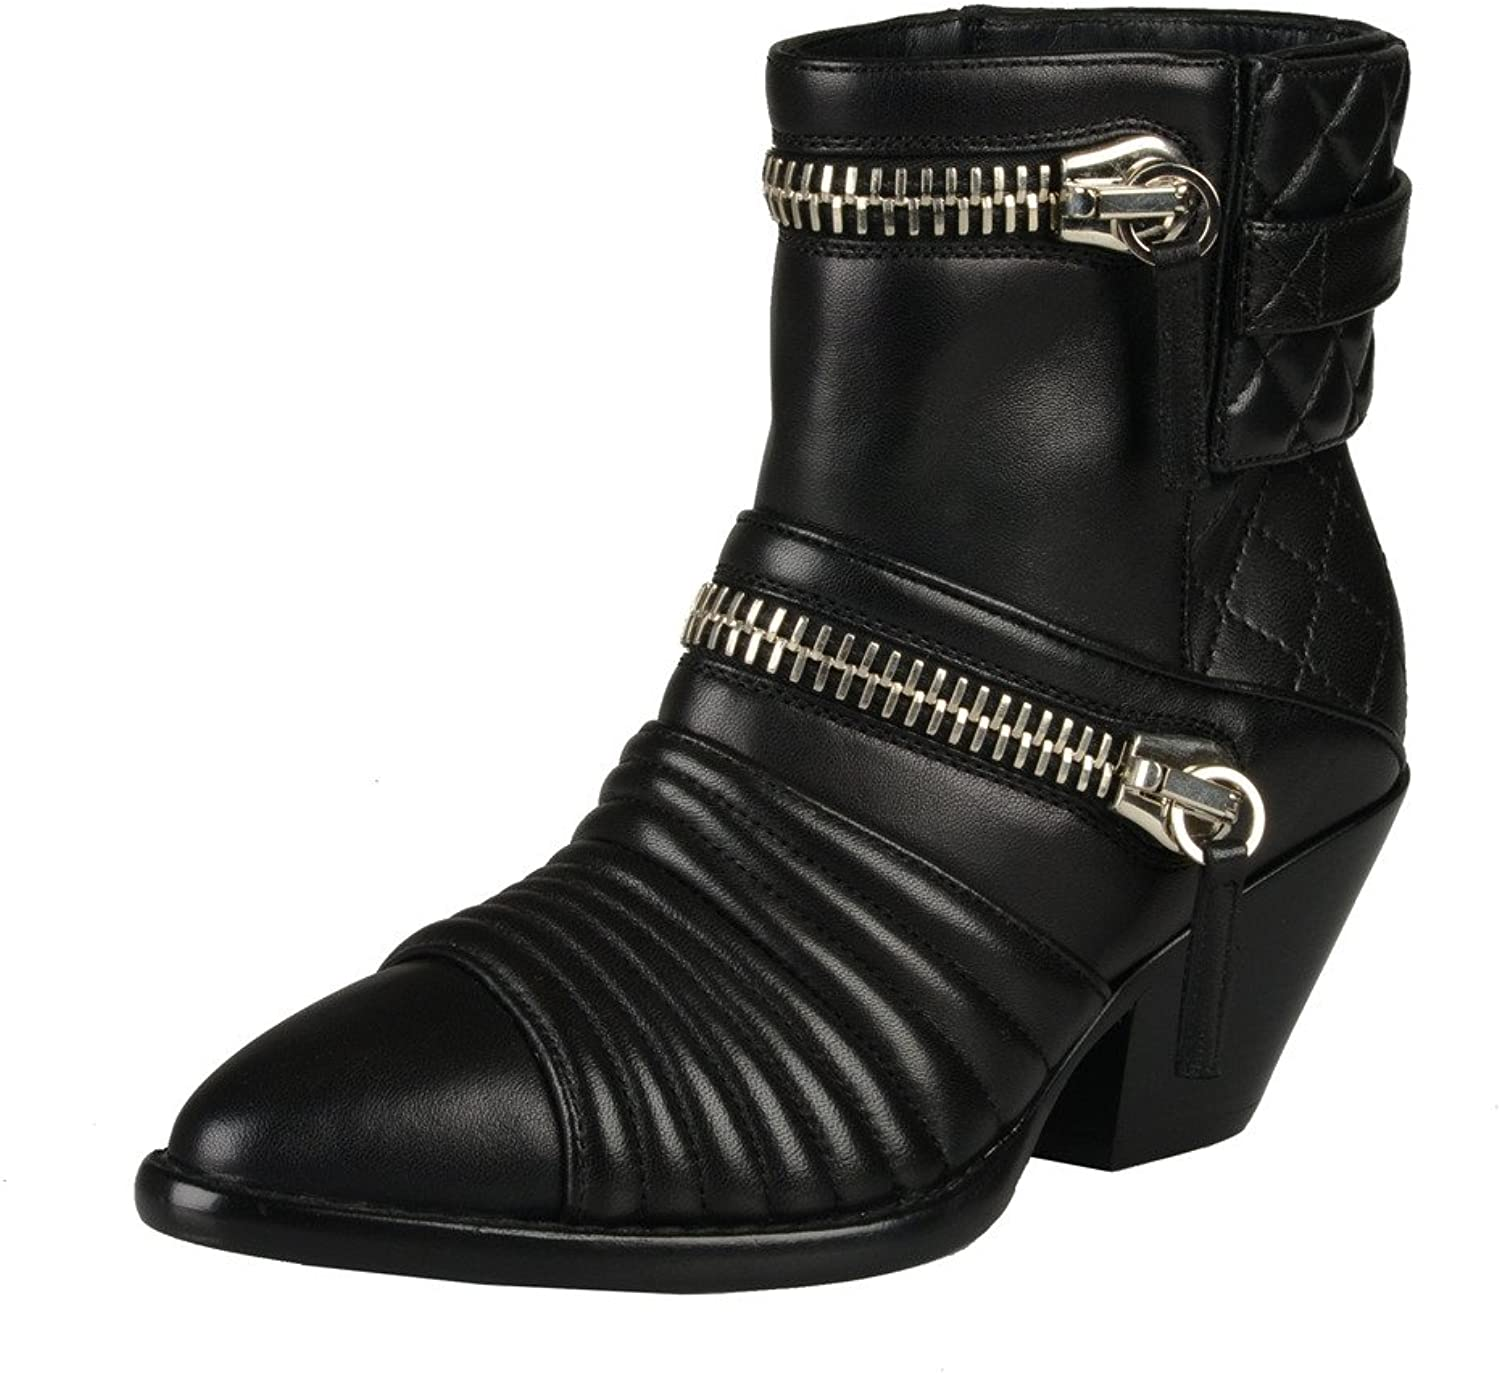 Giuseppe Zanotti Design Quilted Leather Black Ankle Boots shoes